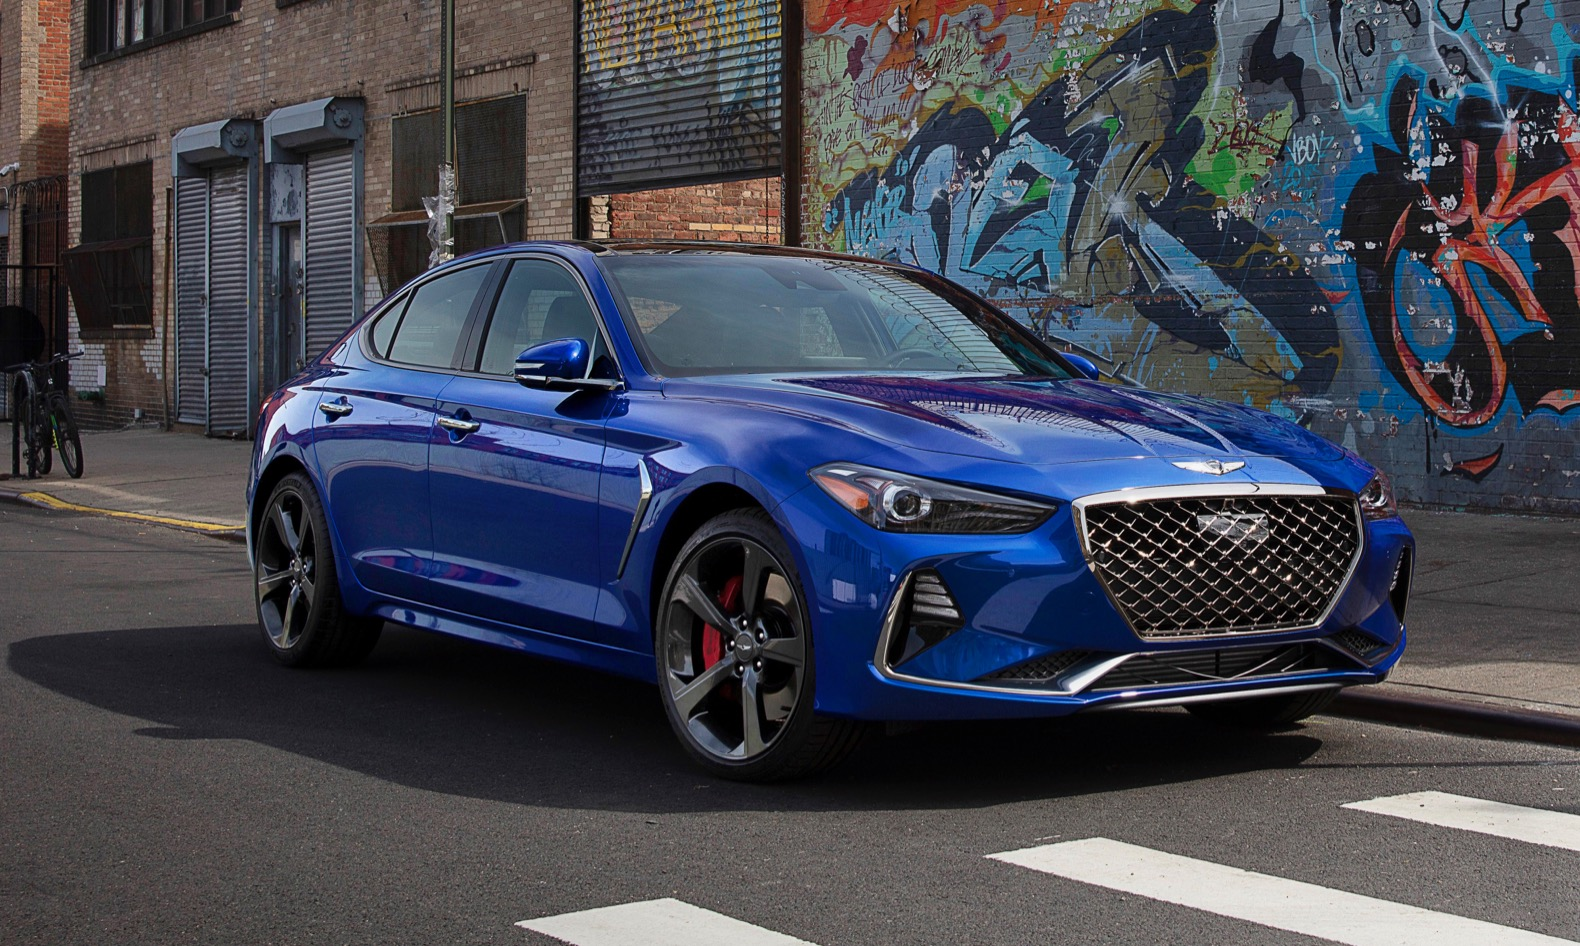 2019 Genesis G70 Review: Ready to battle Germany | The ...